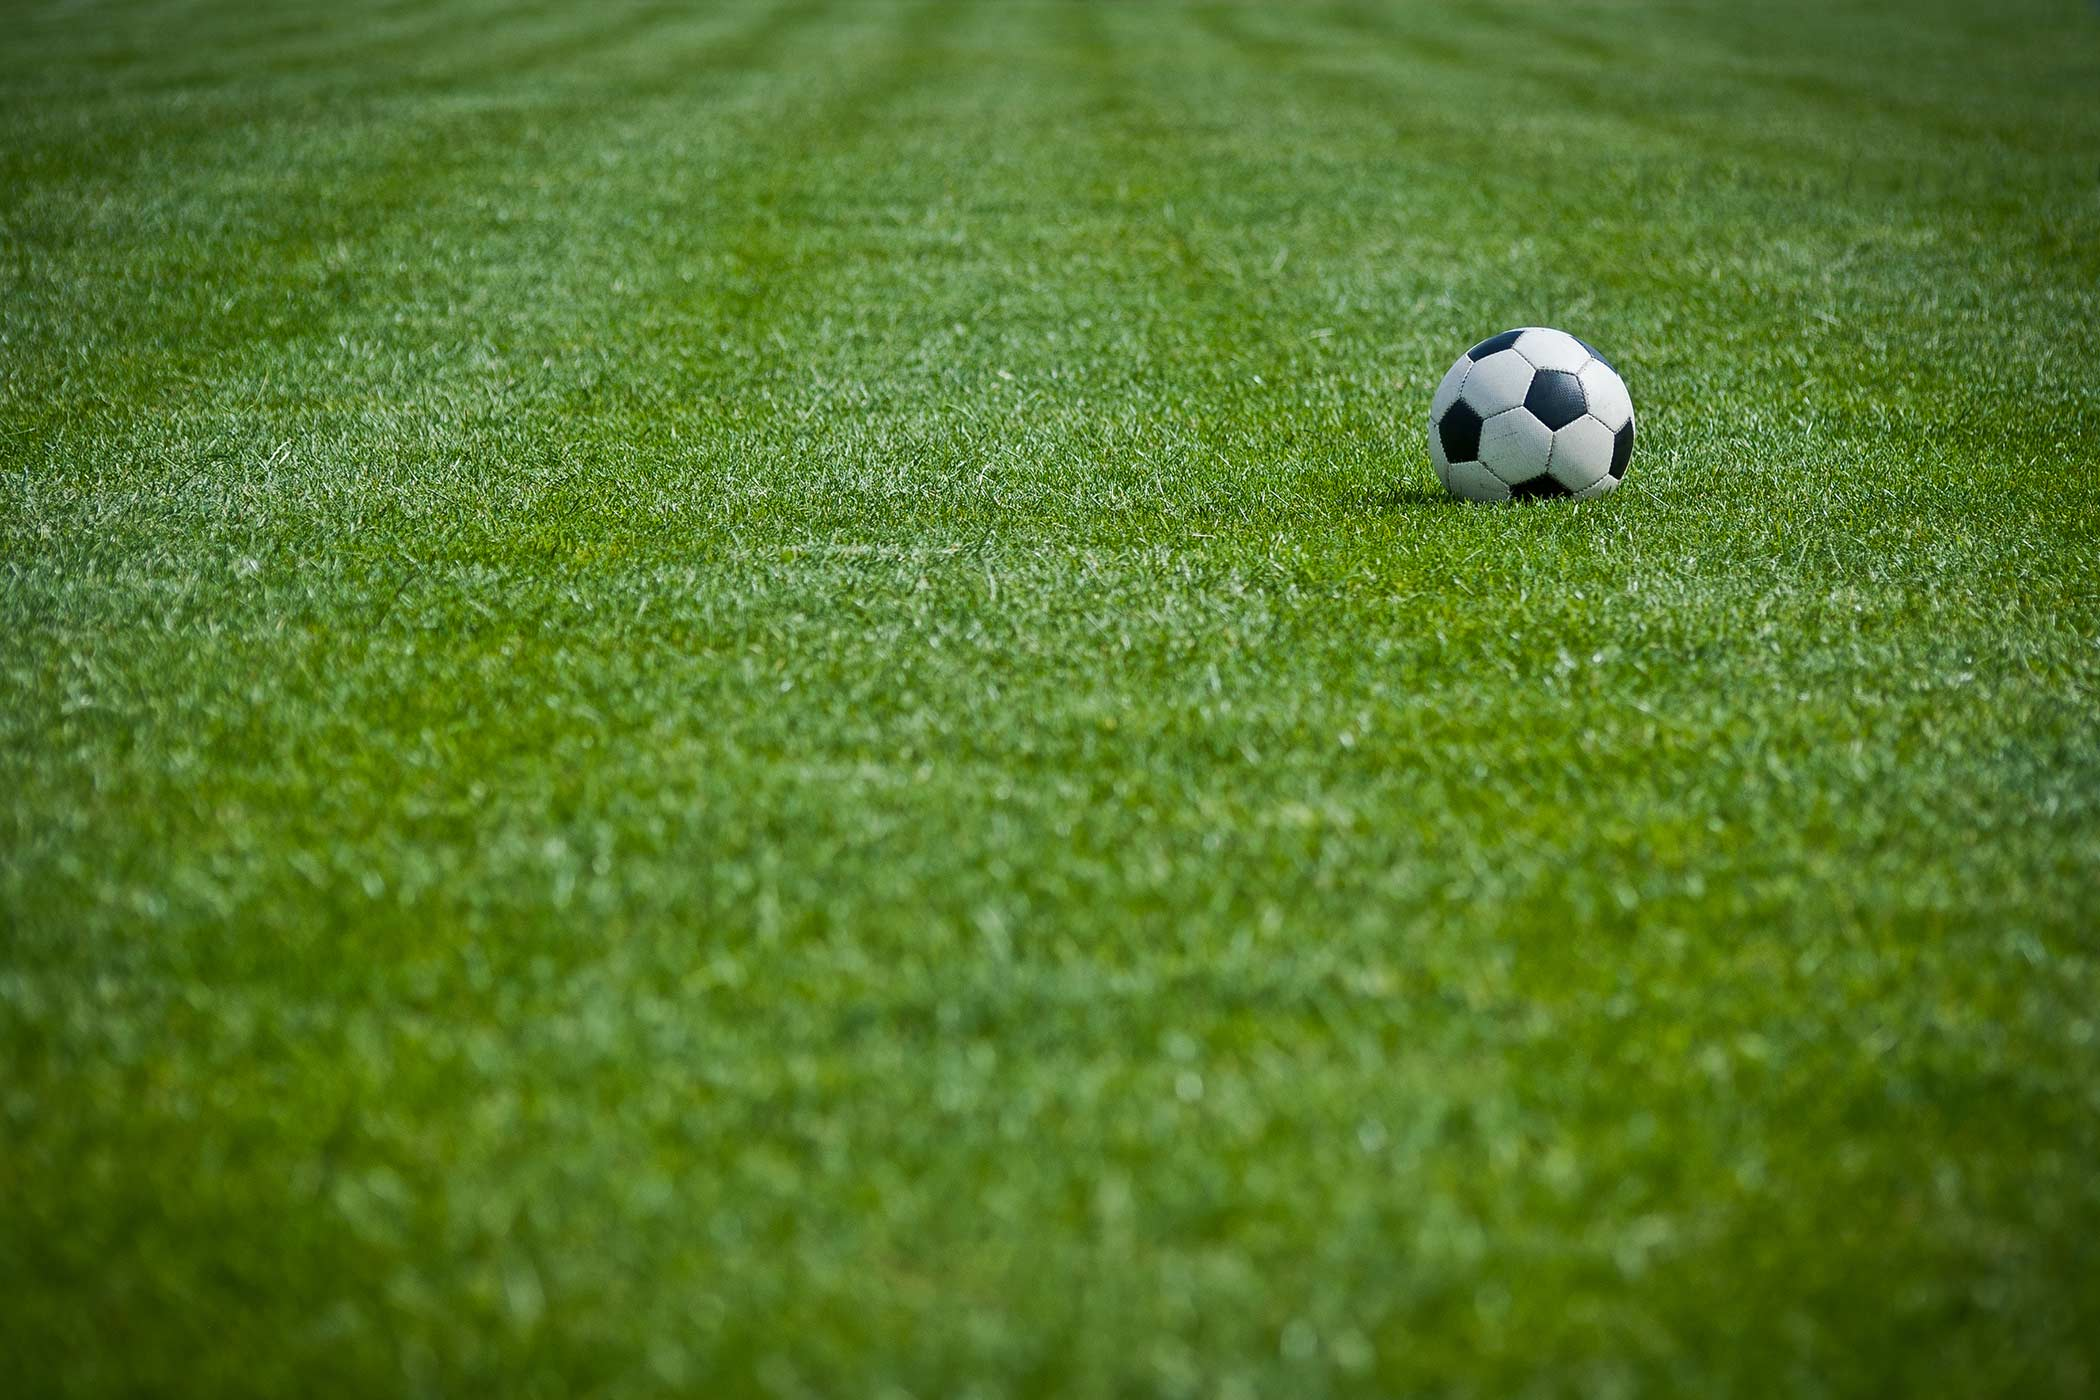 A green soccer field with a soccer ball